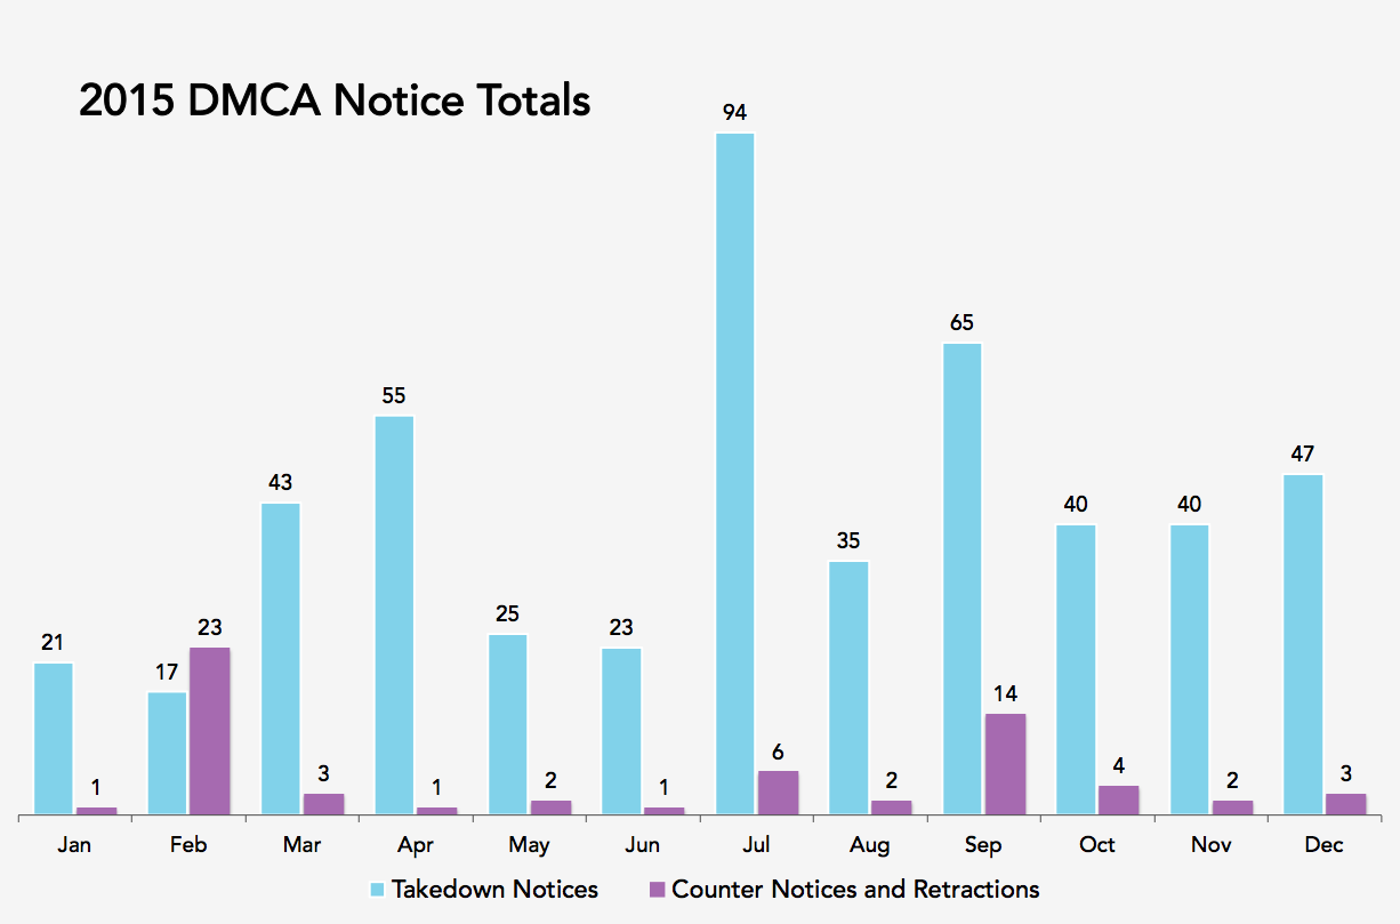 2015 DMCA Notice Totals - Bar Graph